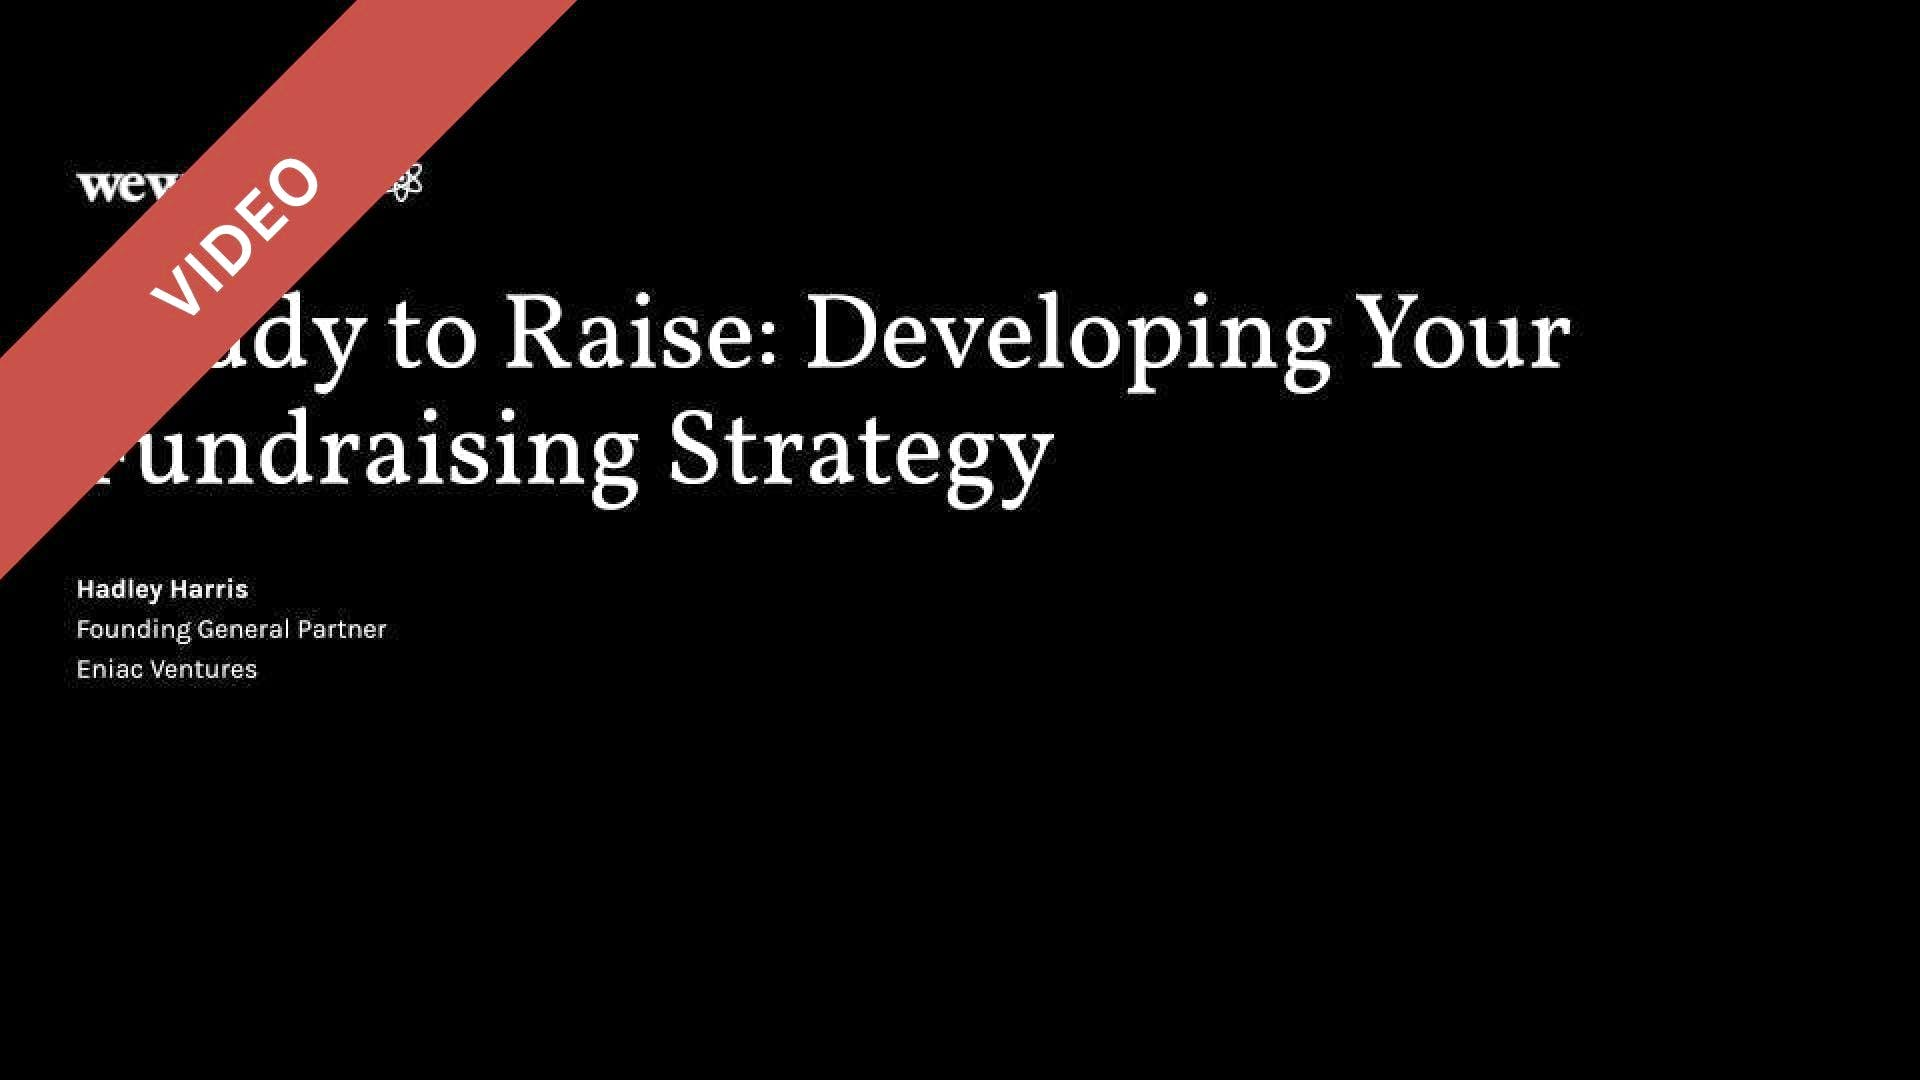 Ready to Raise: Developing Your Fundraising Strategy